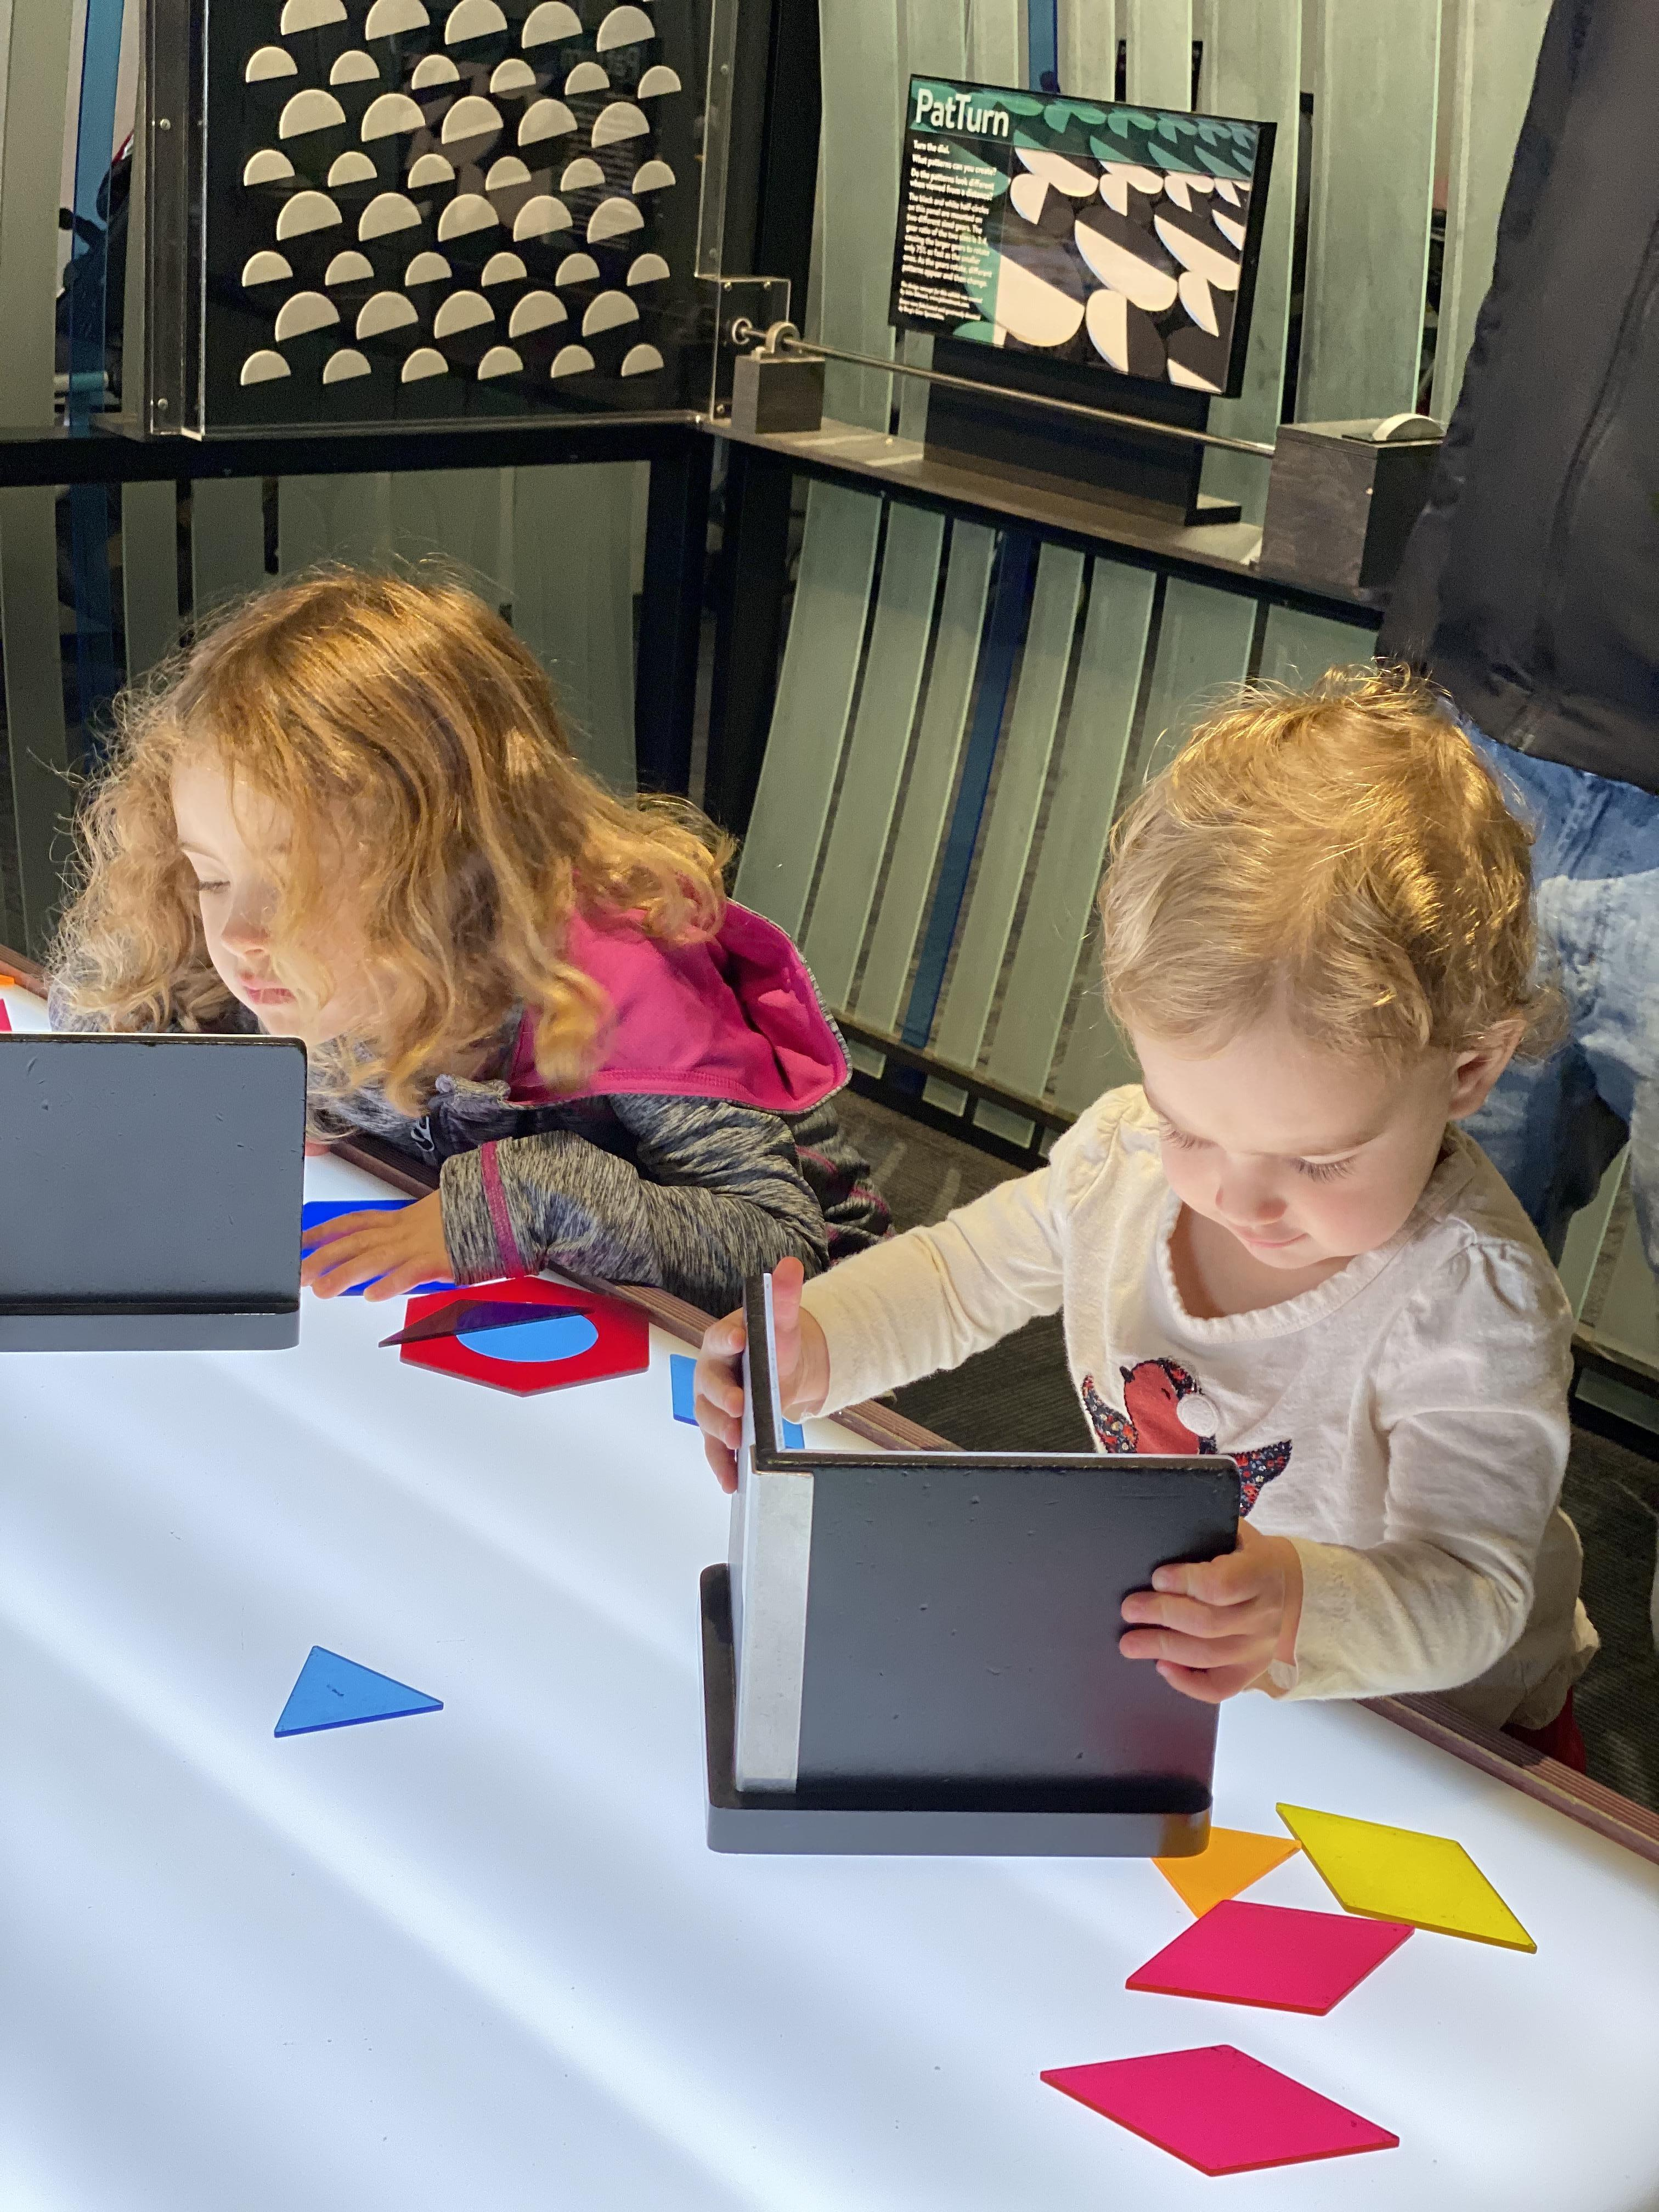 Sara Mauskopf's two daughters play with books at a local museum